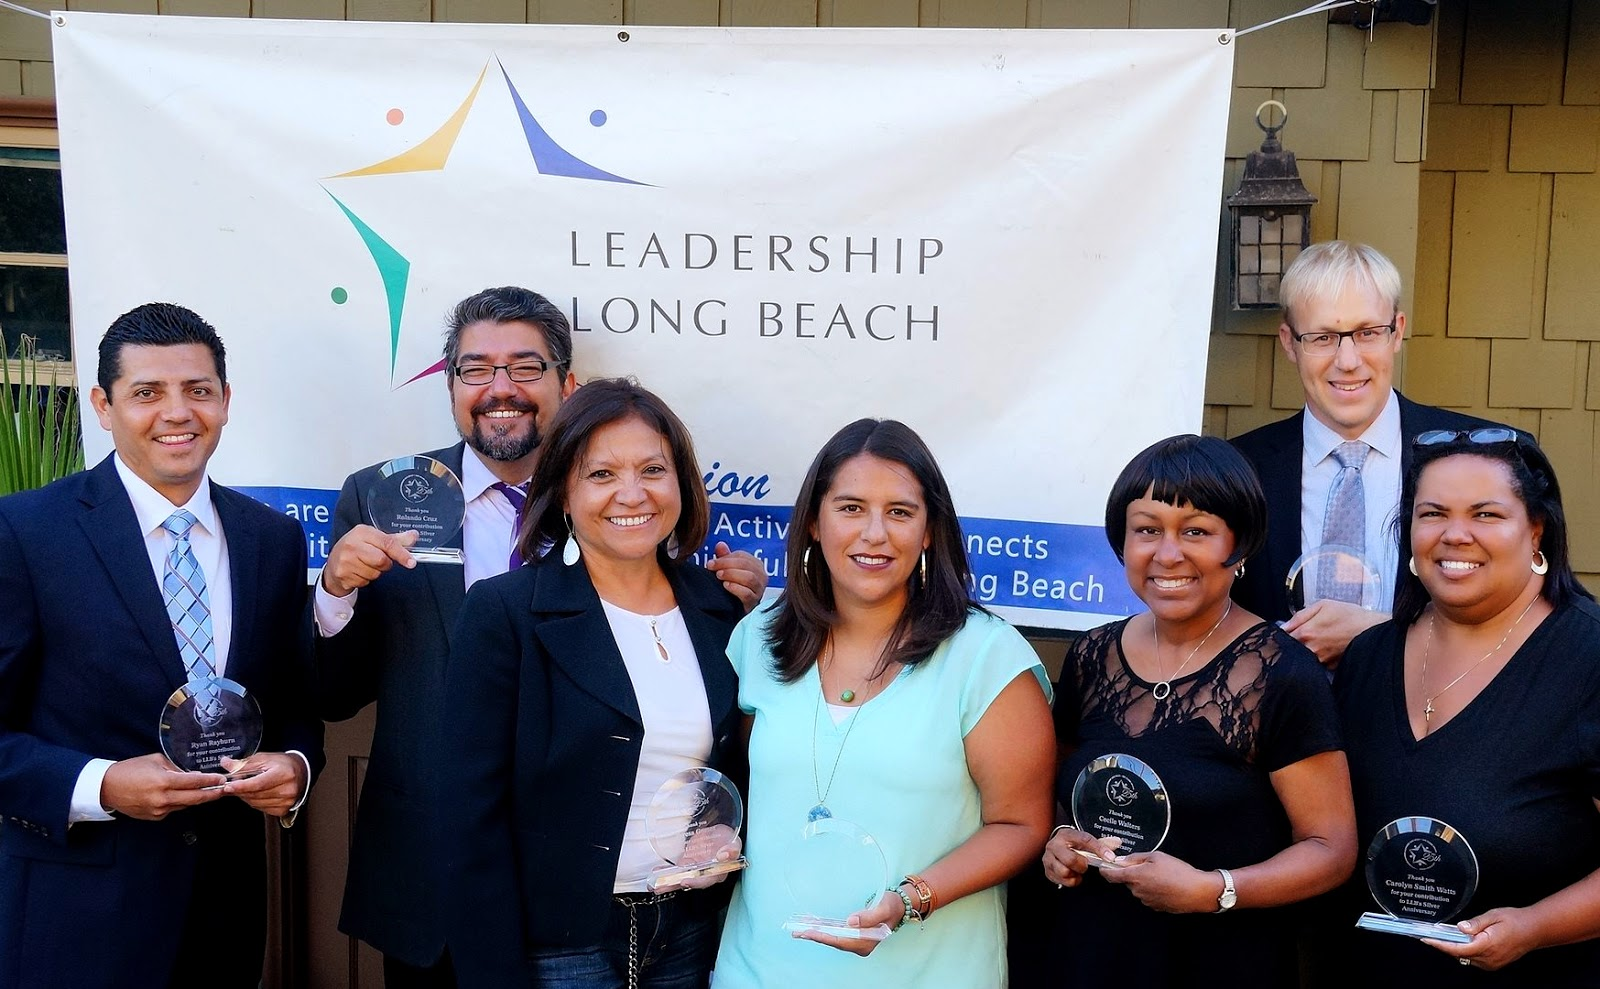 Leadership Long Beach Most Impactful Award Carolyn Smith Watts